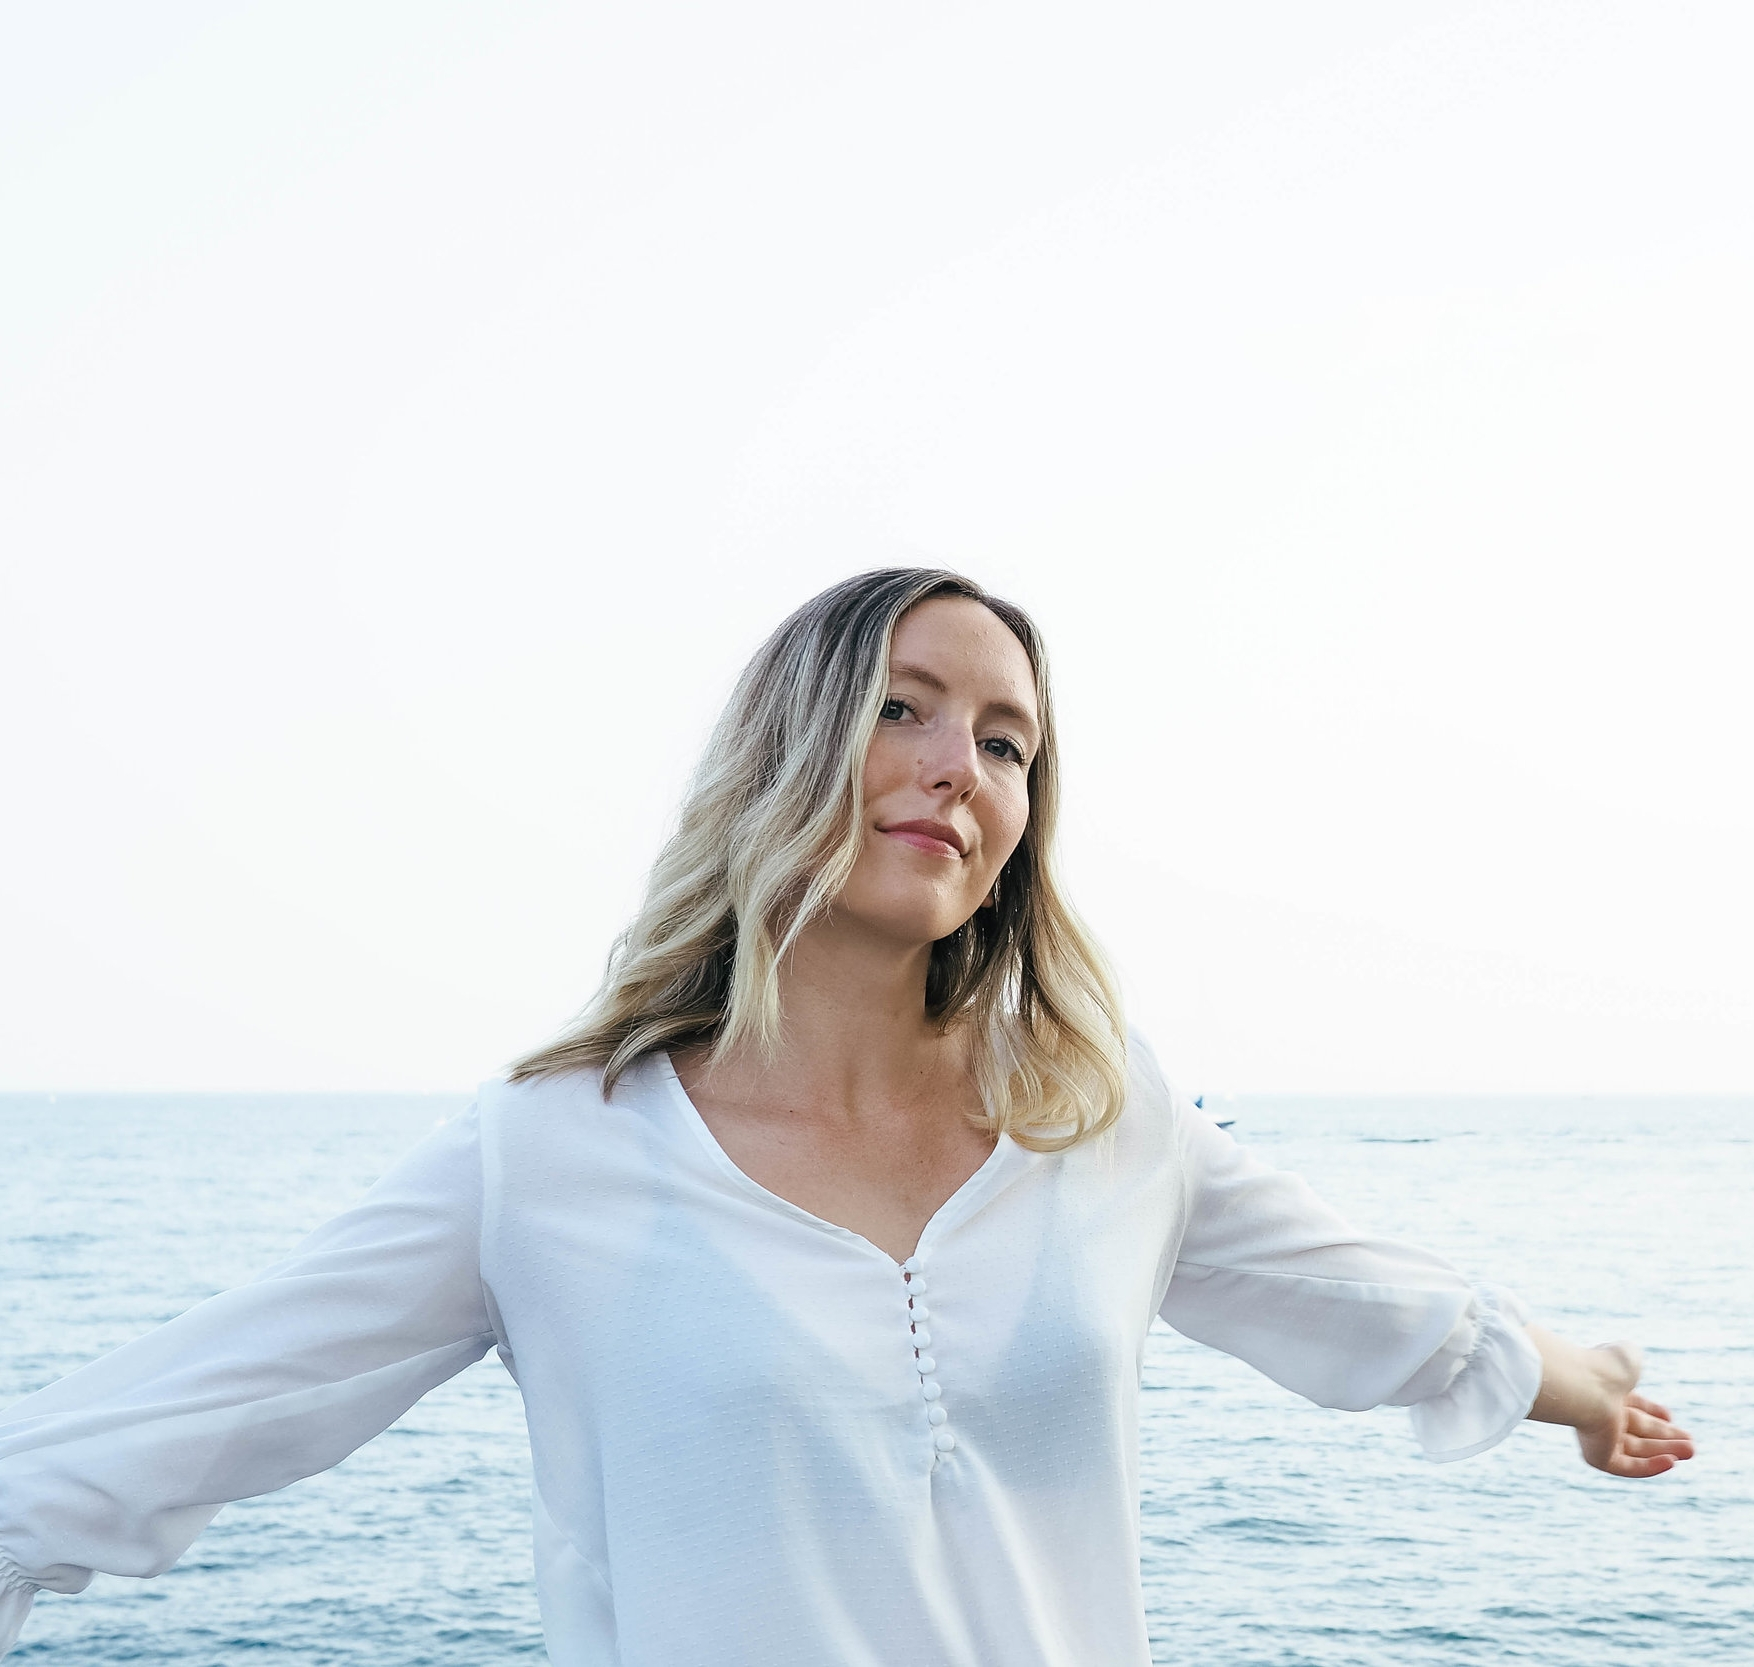 5 WAYS TO CALM YOUR ANXIETY - KRIS GILL